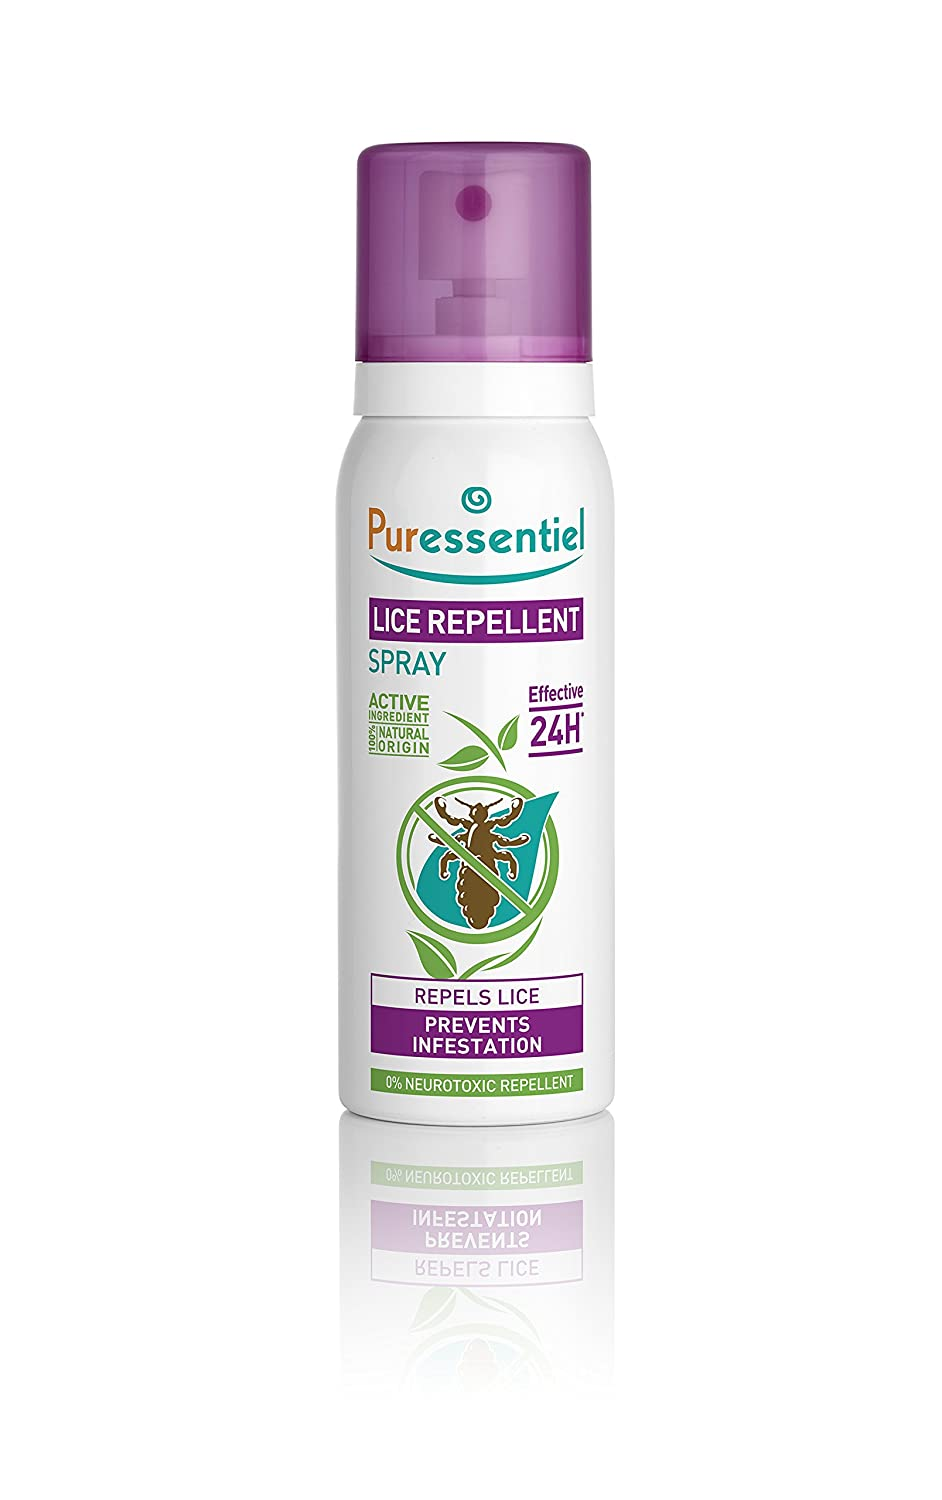 Puressentiel Lice Repellent Spray 75 ml - Head lice repellent - 24H effective protection - 100% natural origin, no neurotoxic repellent, non aerosol 4001178